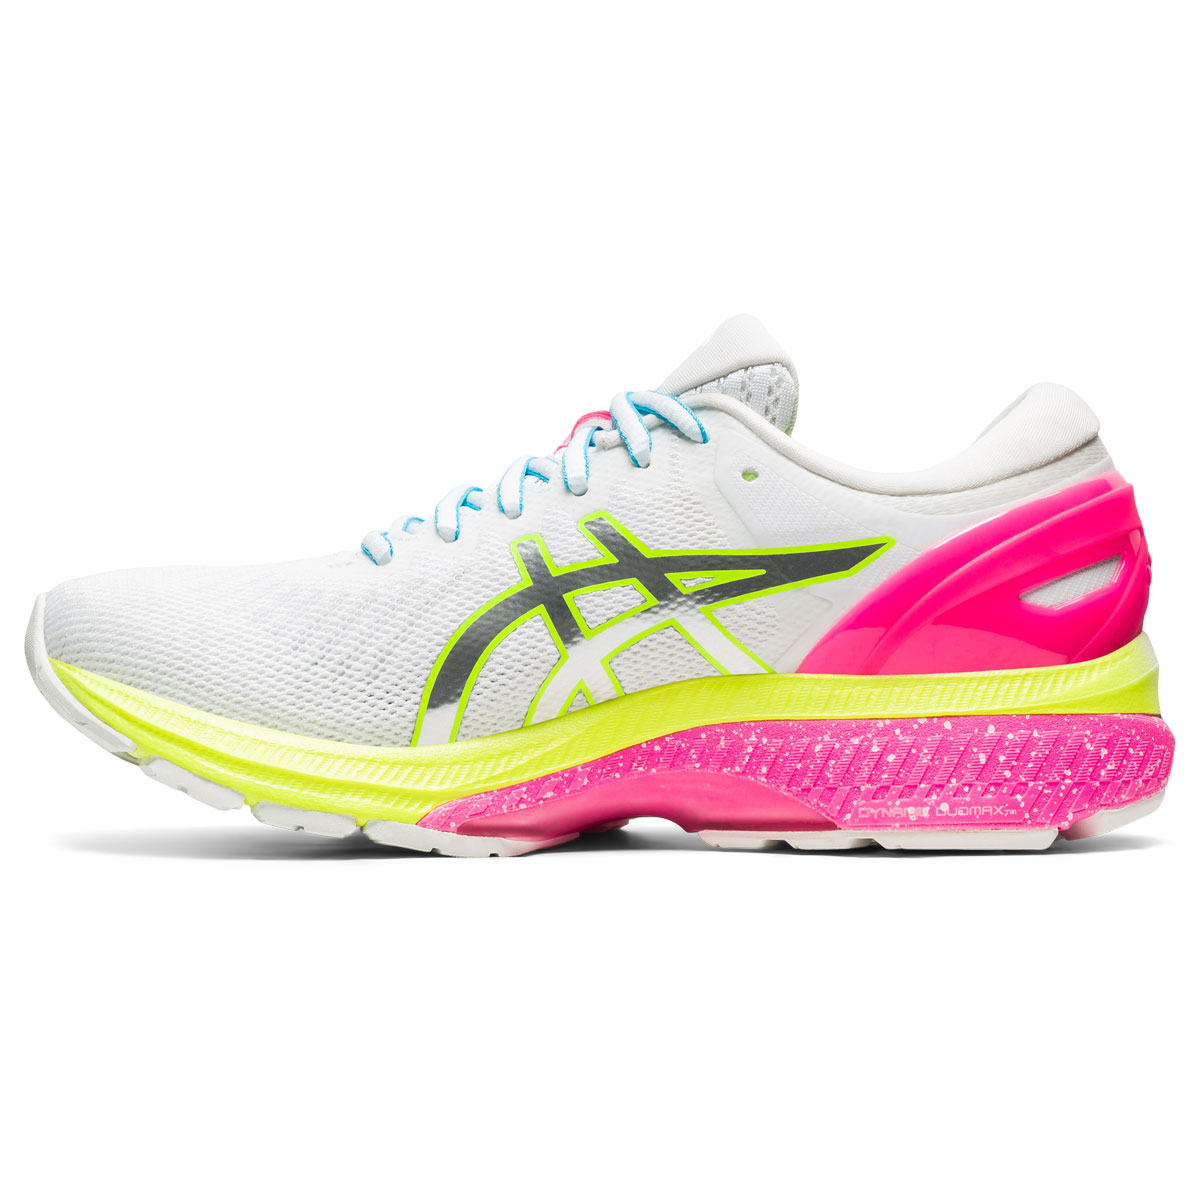 Women's Asics GEL-Kayano 27 Lite-Show Running Shoe - Color: White/Pure Silv (Regular Width) - Size: 5, White/Pure Silver, large, image 2